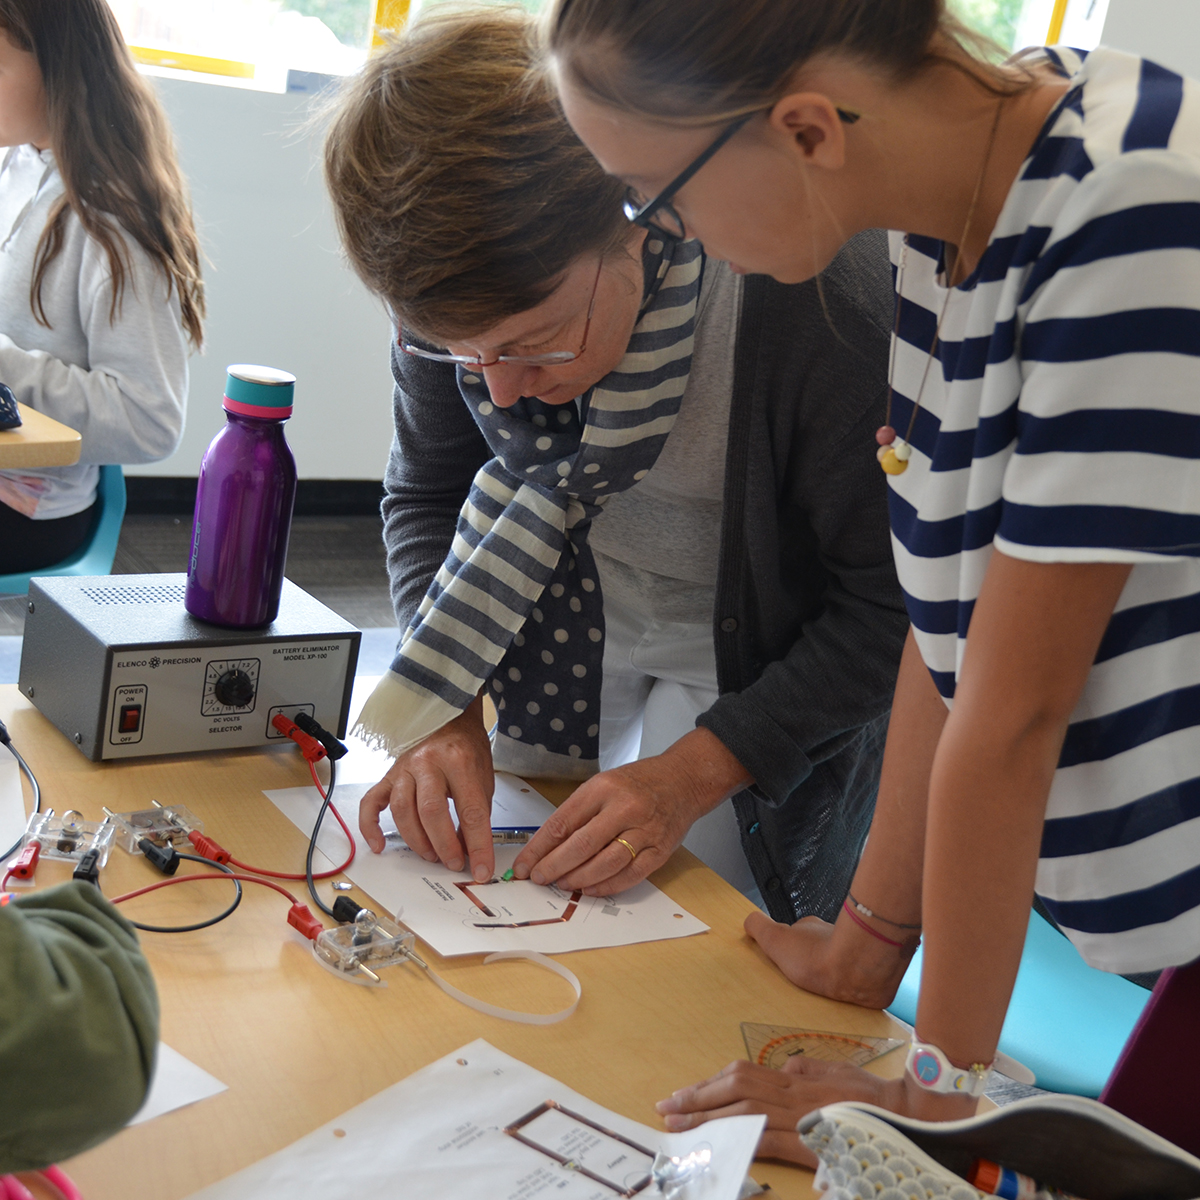 A teacher helping a student with circuits